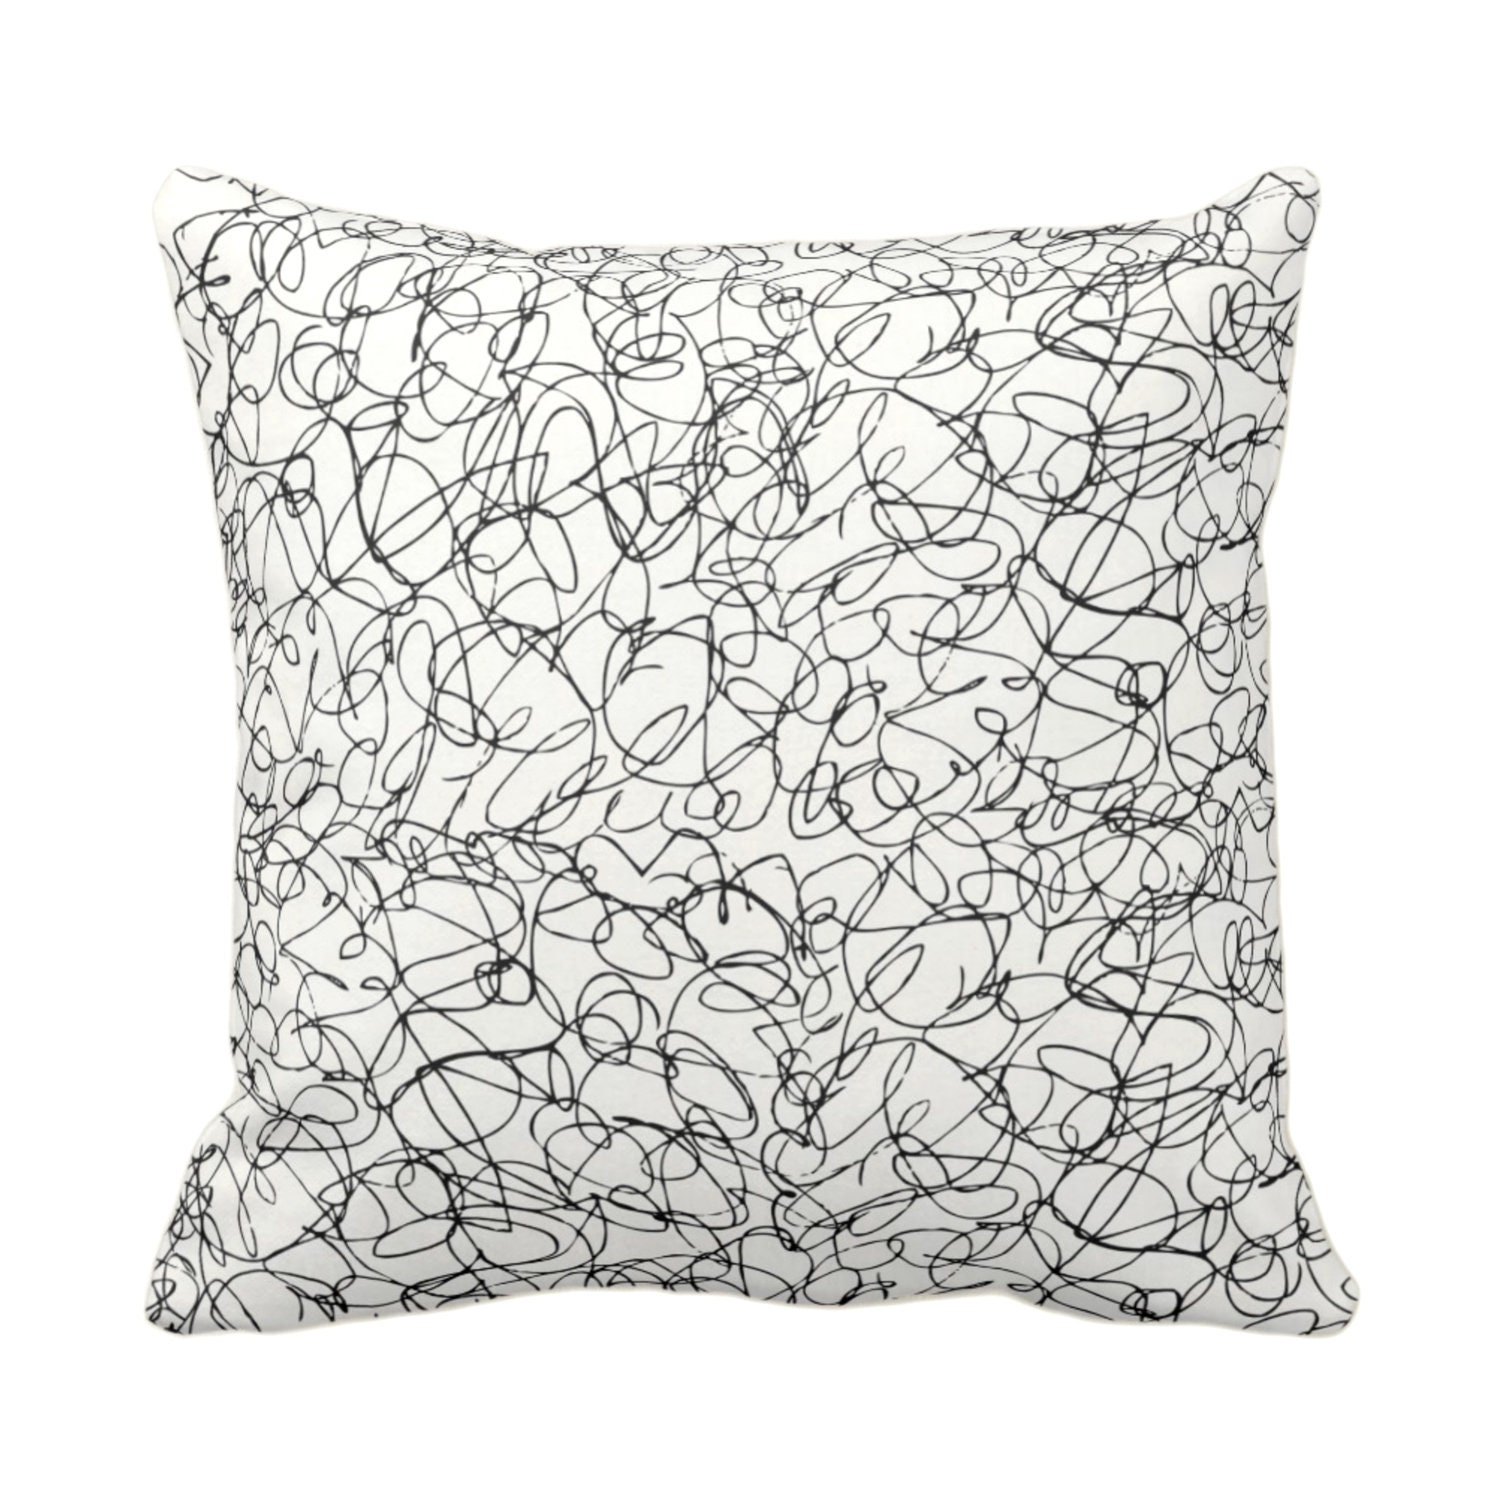 Outdoor Scribble Lines Throw Pillow Or Cover Ivory Black 16